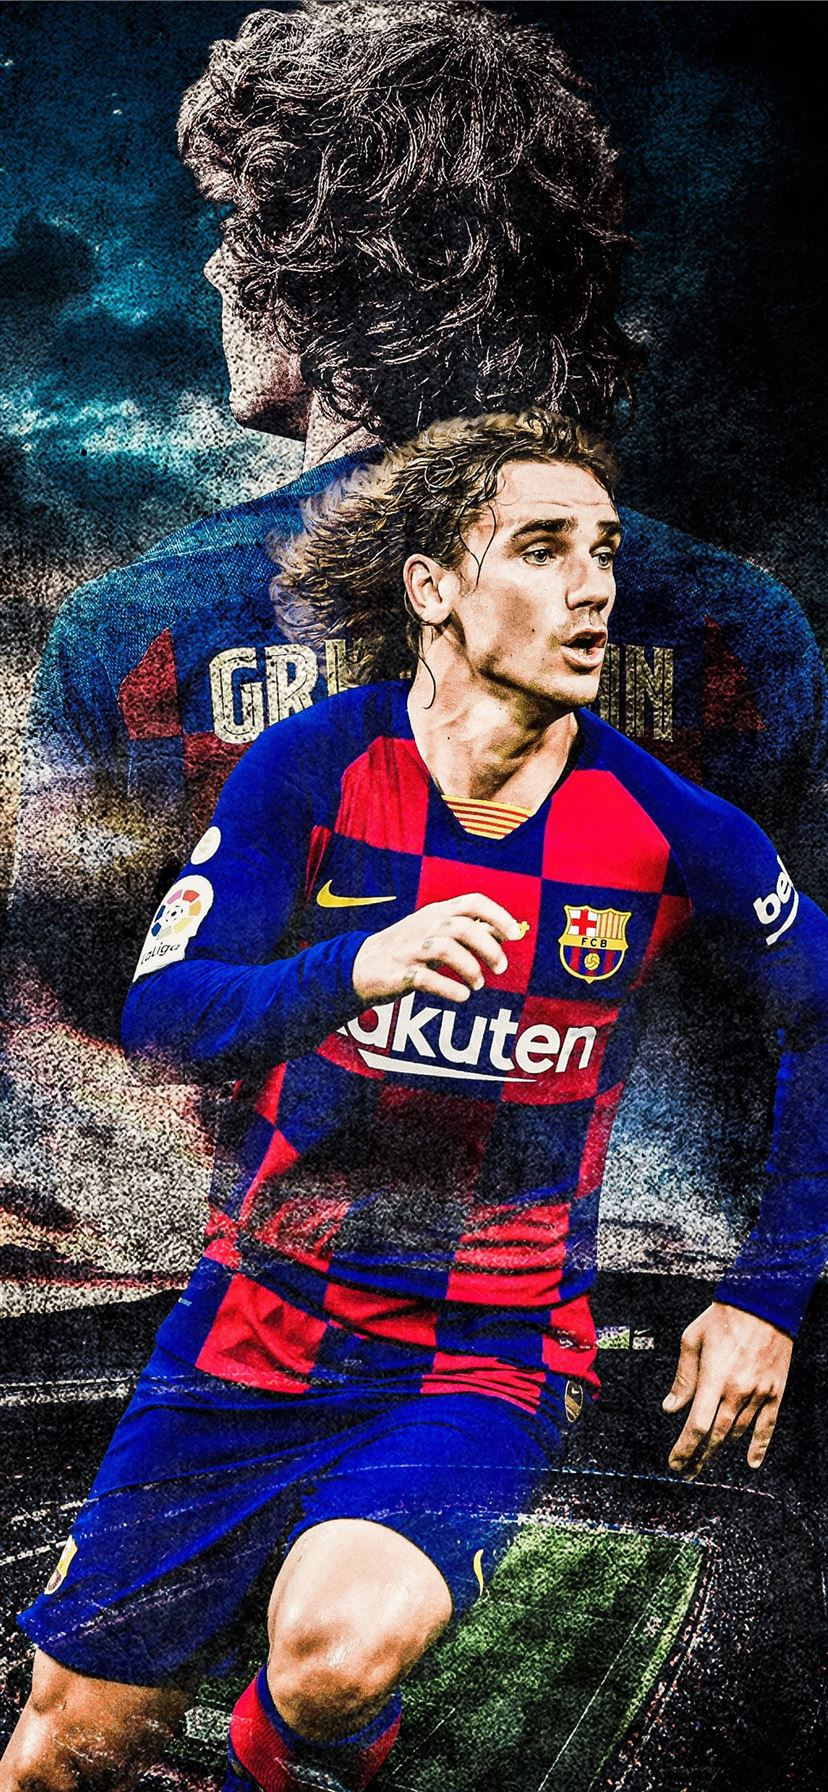 fc barcelona iphone 11 wallpapers free download fc barcelona iphone 11 wallpapers free